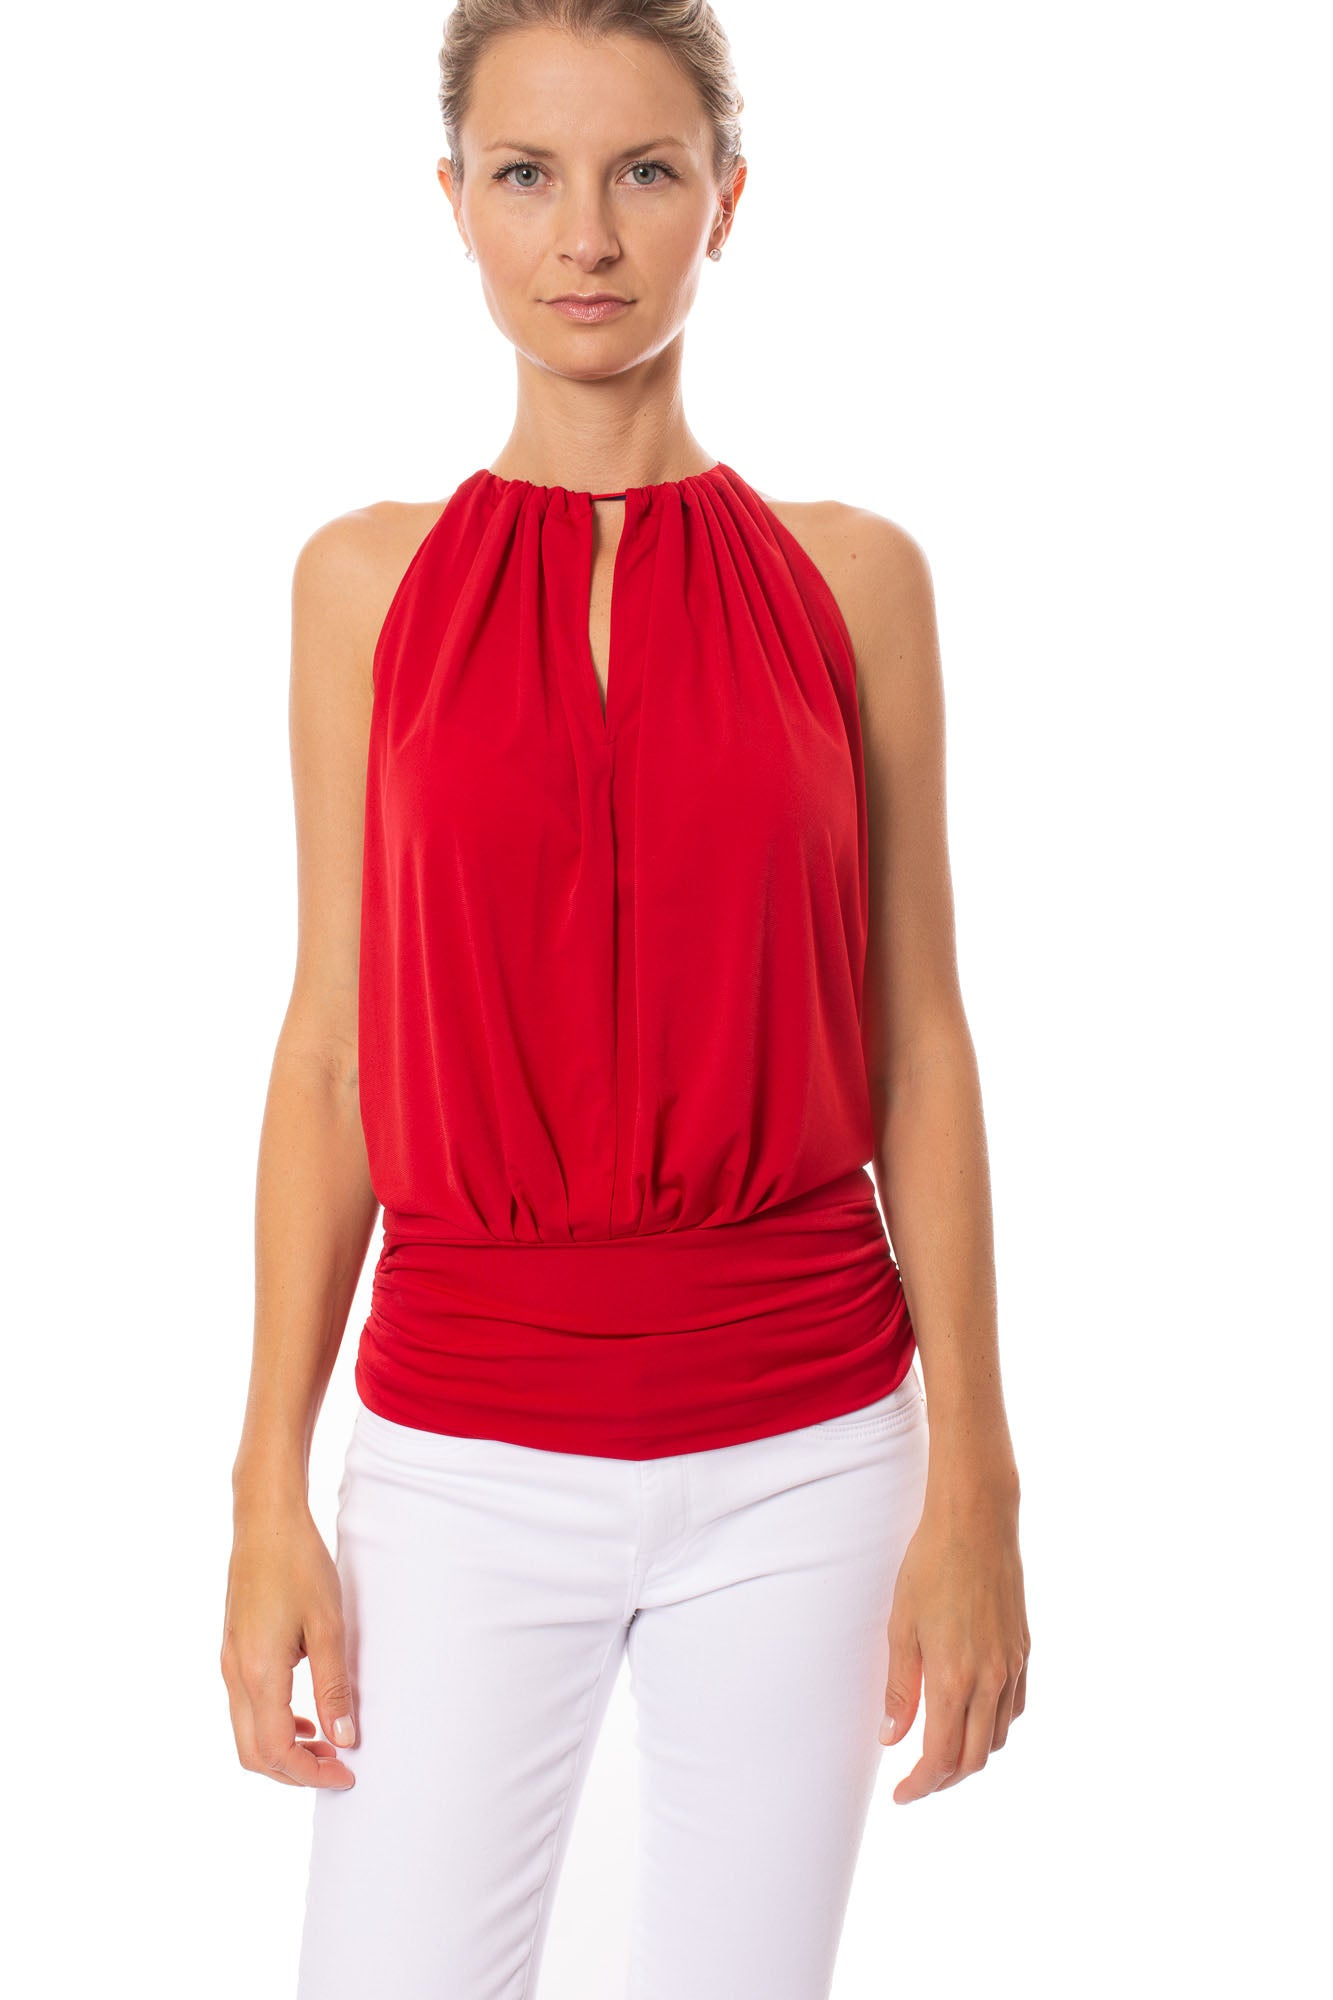 Julian Chang - Halter Top W/Contrasting Ribbon Draw String & Ruched Waist (1660, Red)